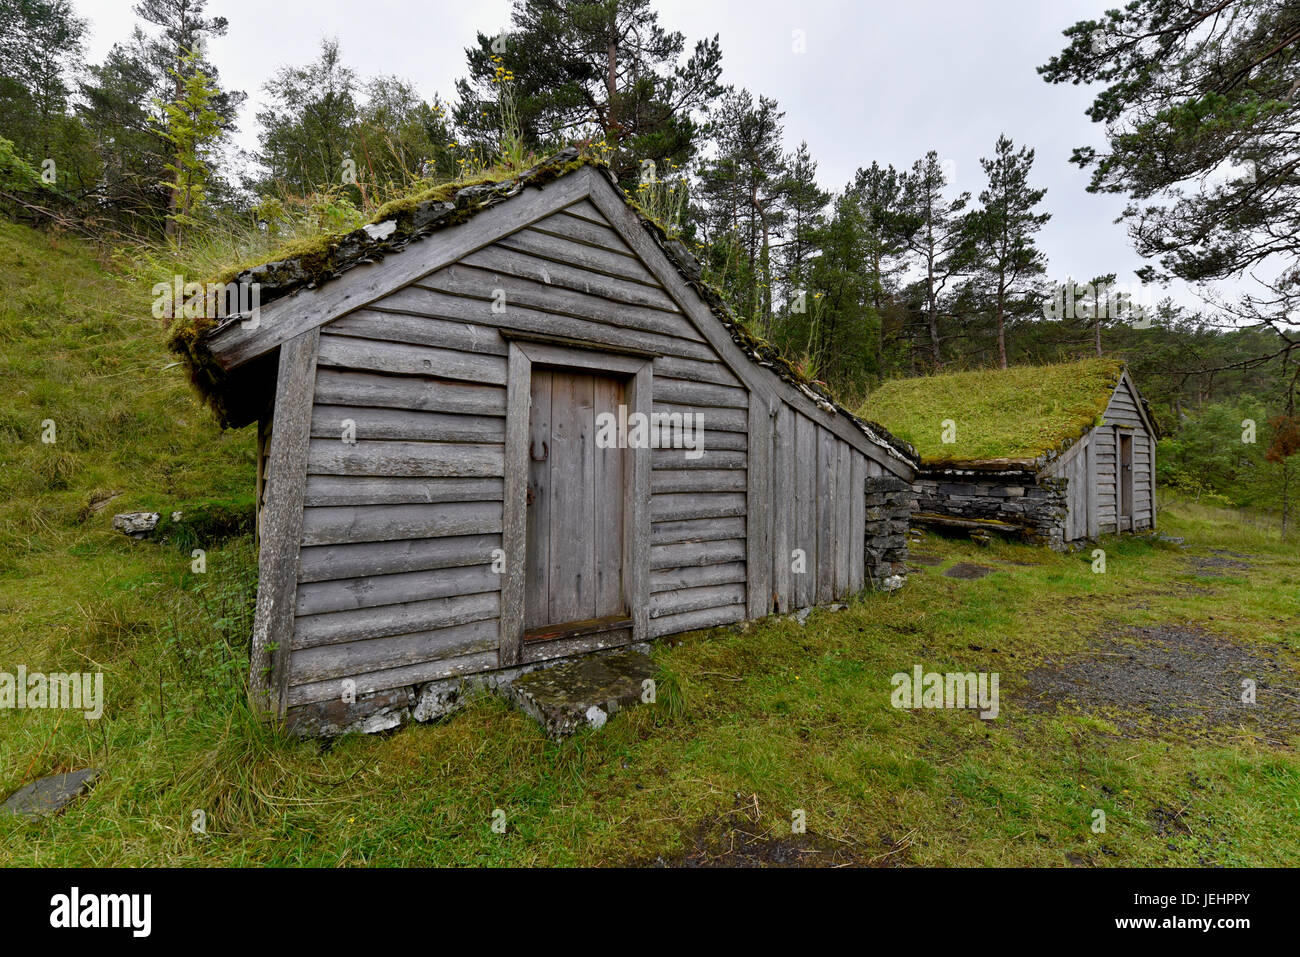 Grass roof on an old farm structure atop a mountain on the outskirts of Bergen, Norway. - Stock Image